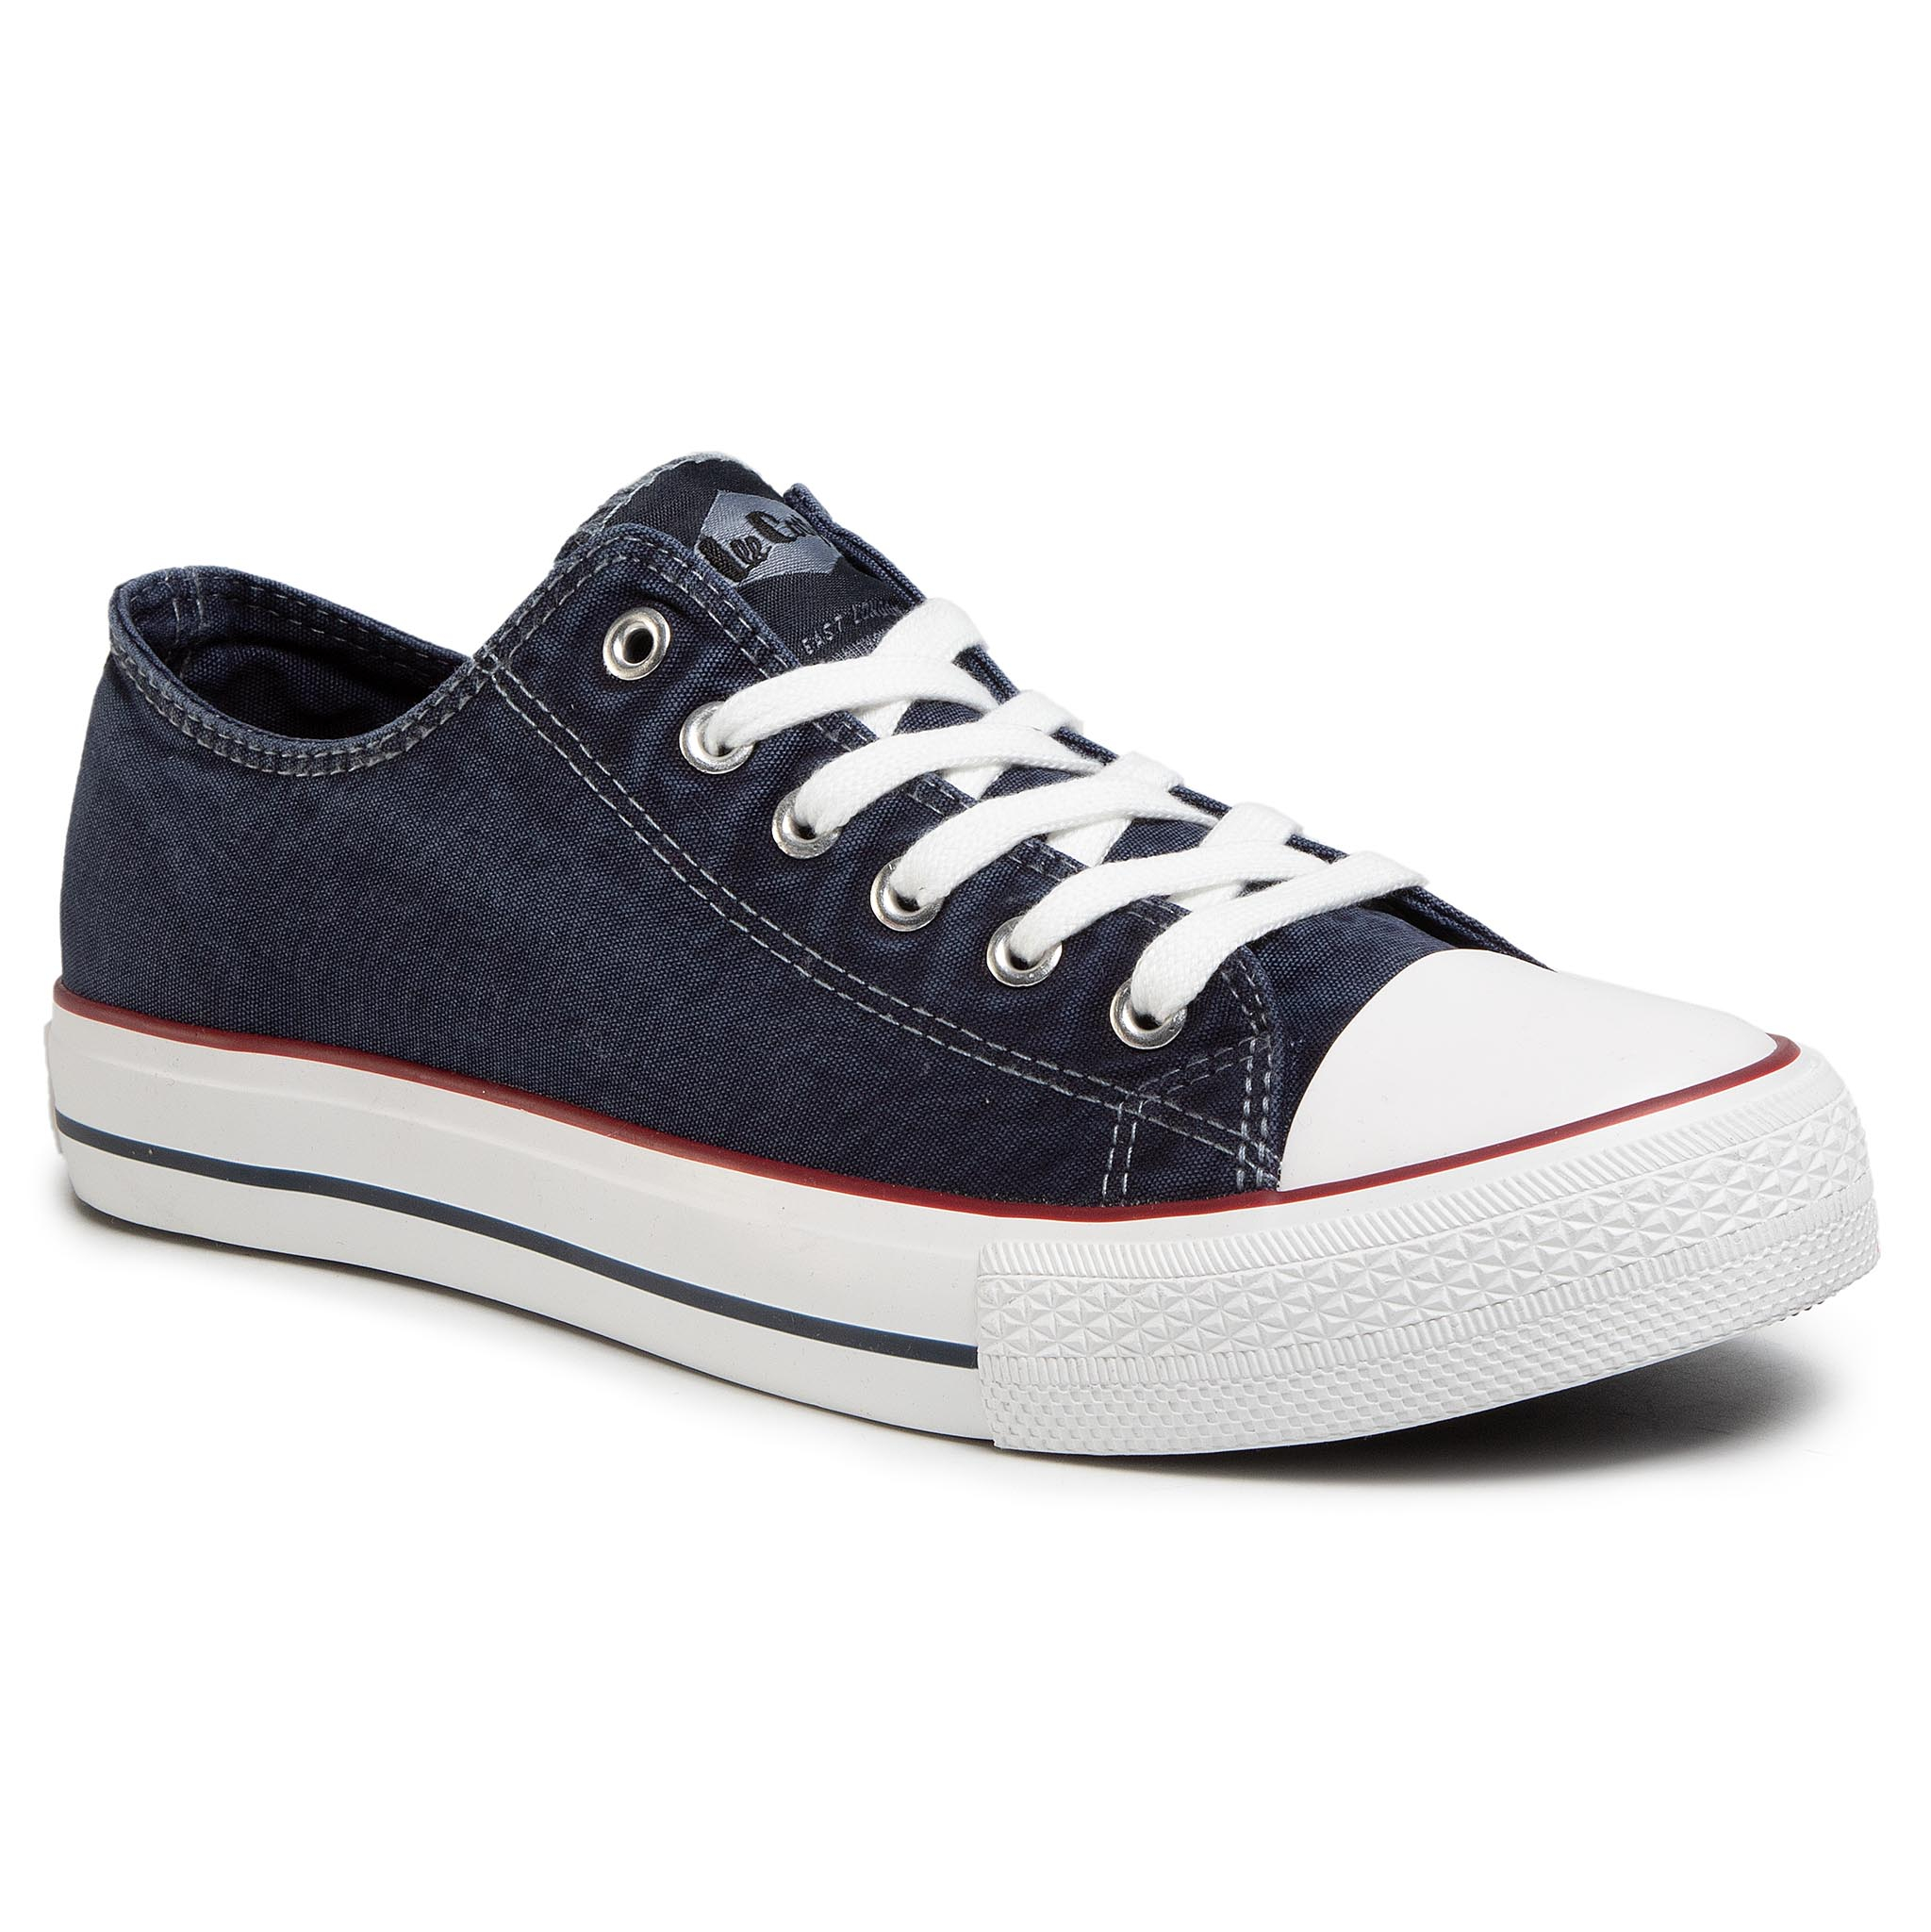 Sneakers LEE COOPER - LCW-20-31-033 Navy